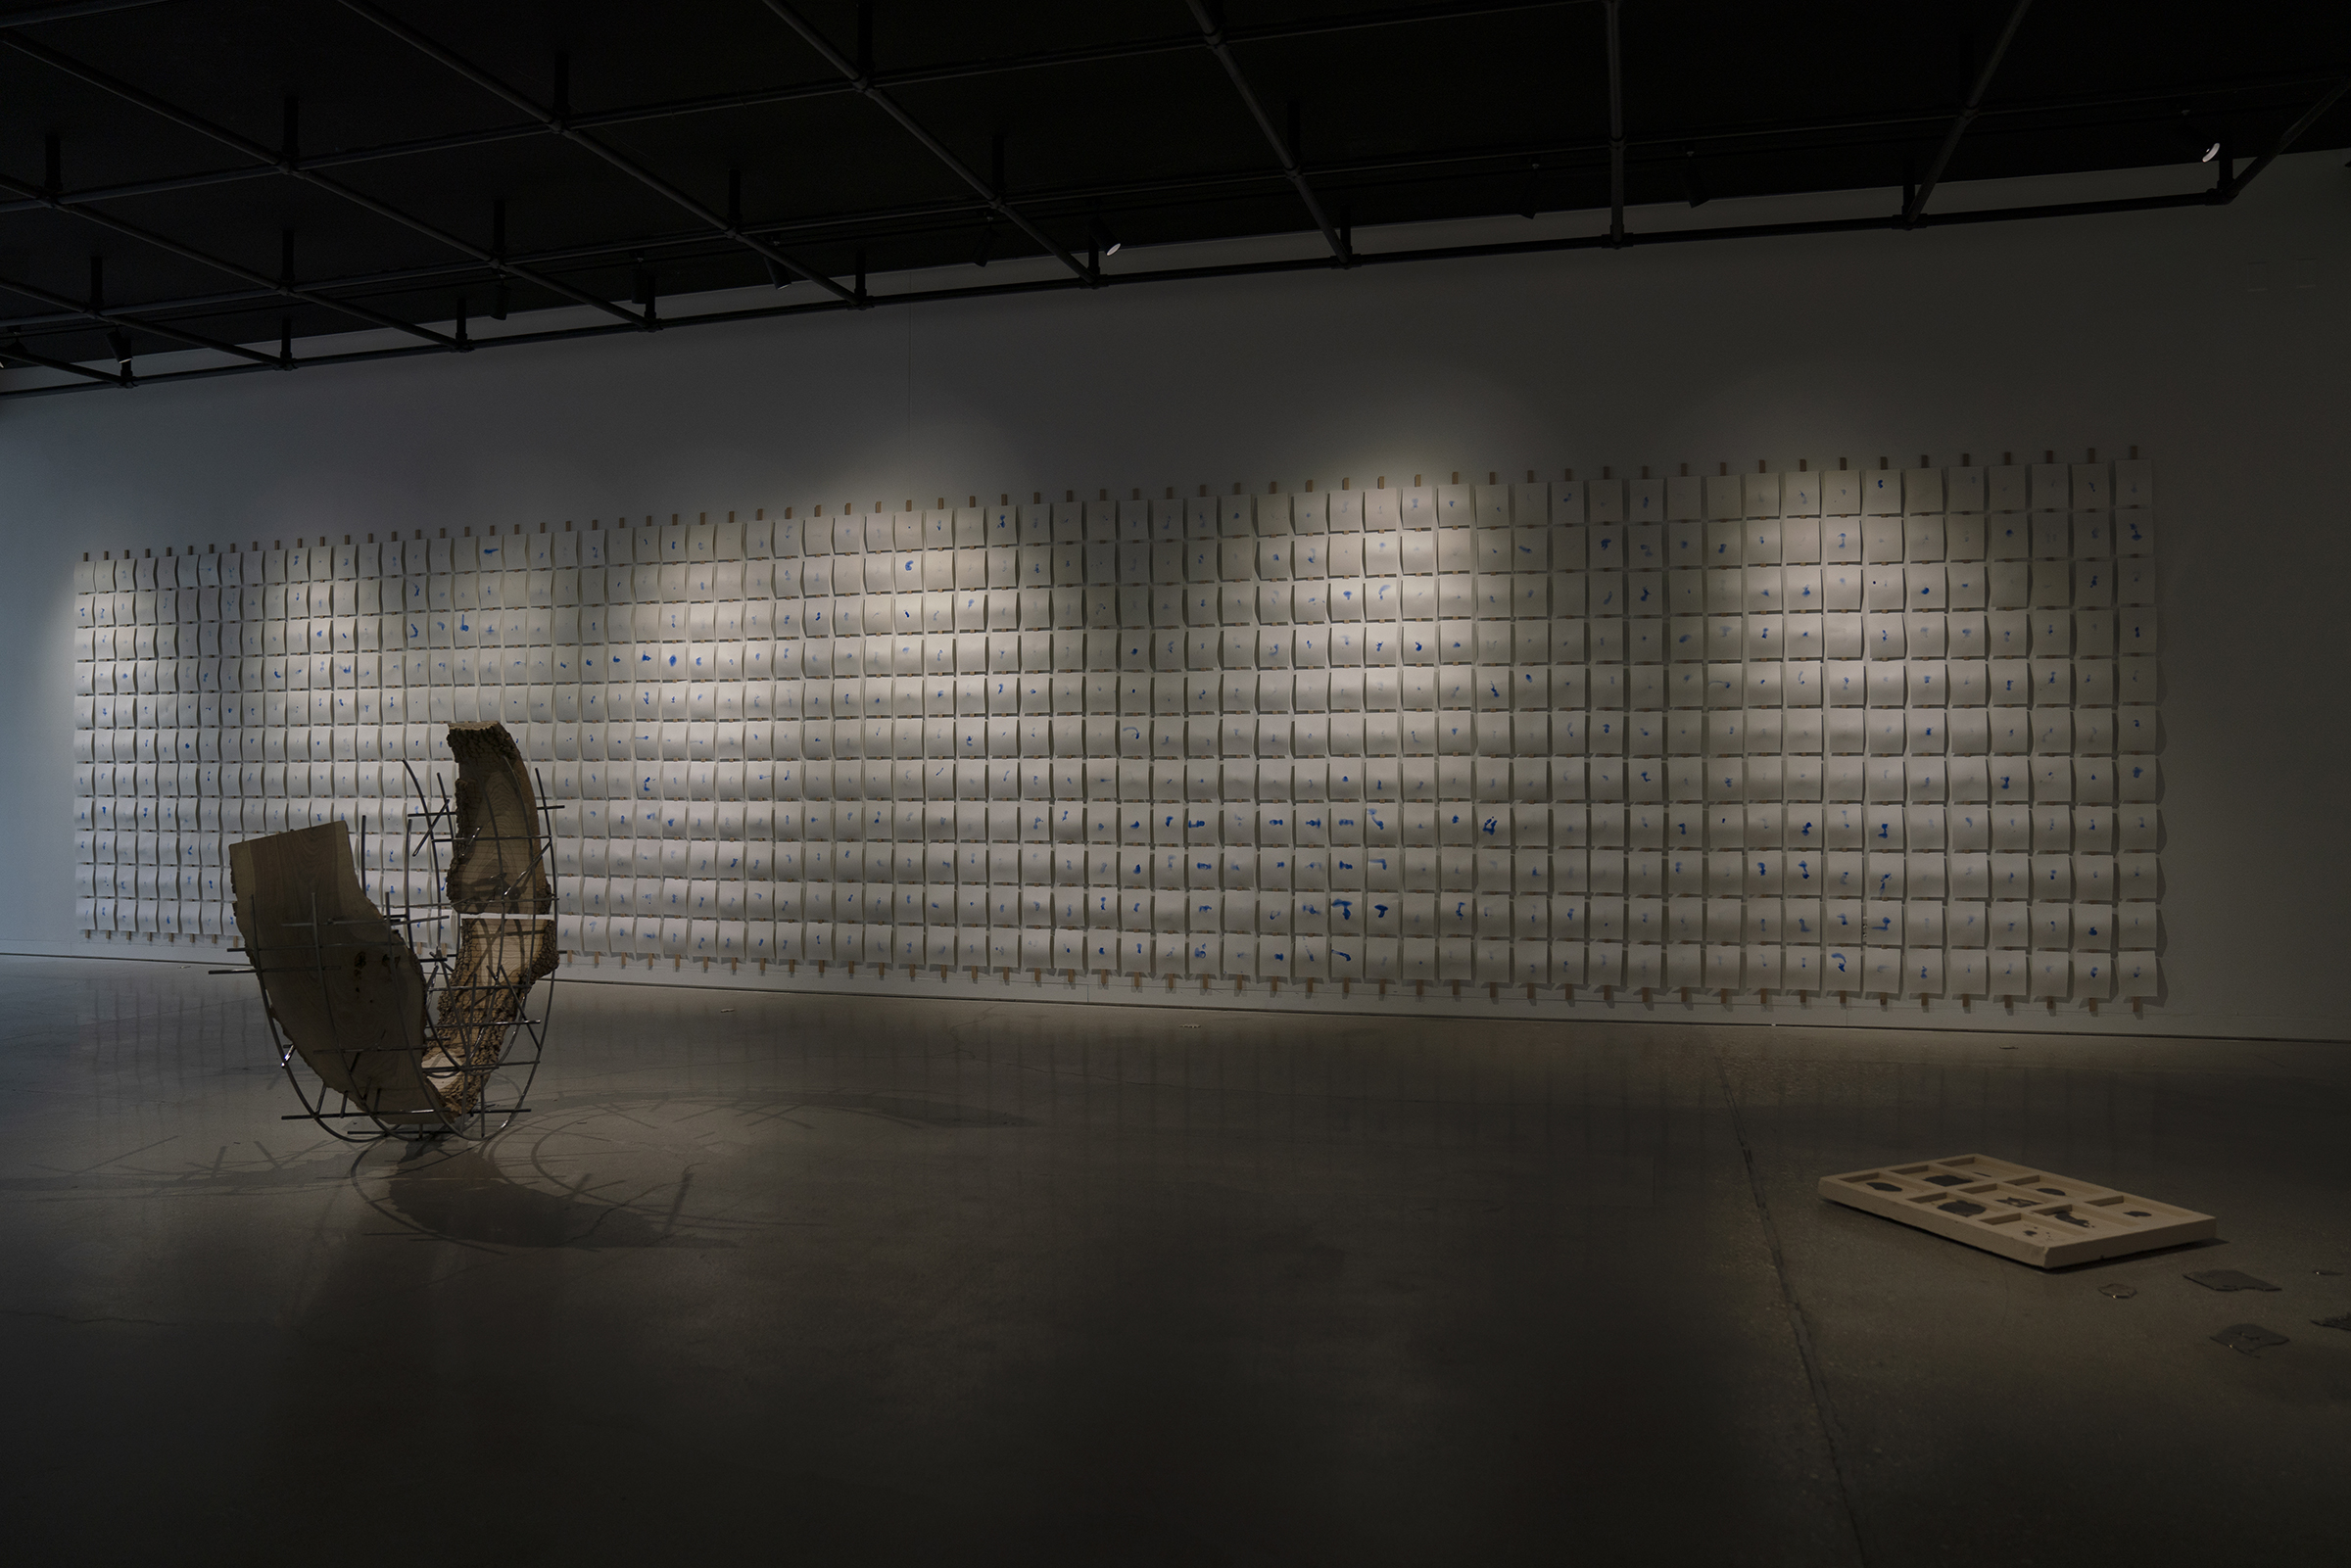 Installation view of Outpour Master of Fine Arts Exhibition by Matthew Vivirito at the Art Lofts Gallery, University of Wisconsin-Madison.